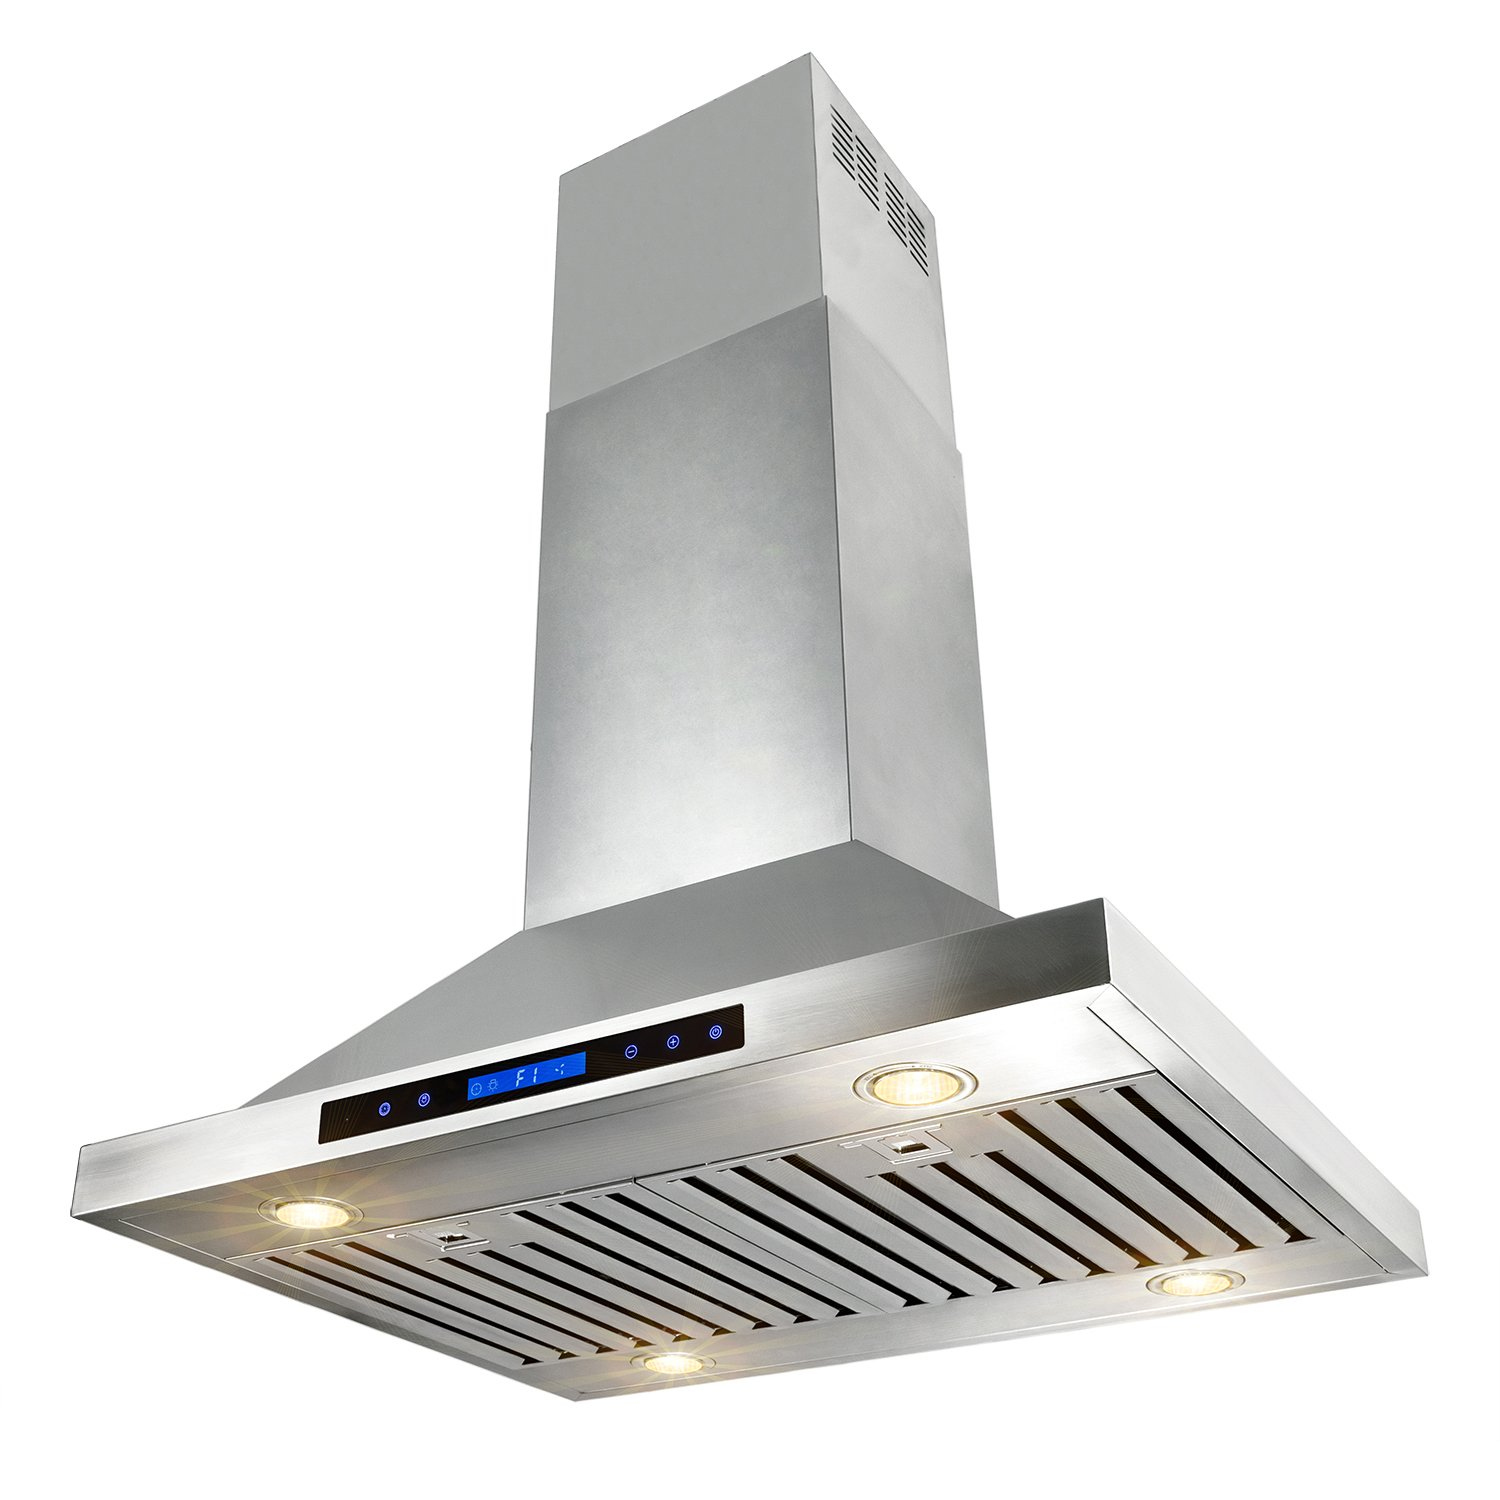 AKDY 30 Stainless Steel Island Mount Dual LED Both Side Touch Control Panel Kitchen Range Hood w//Remote